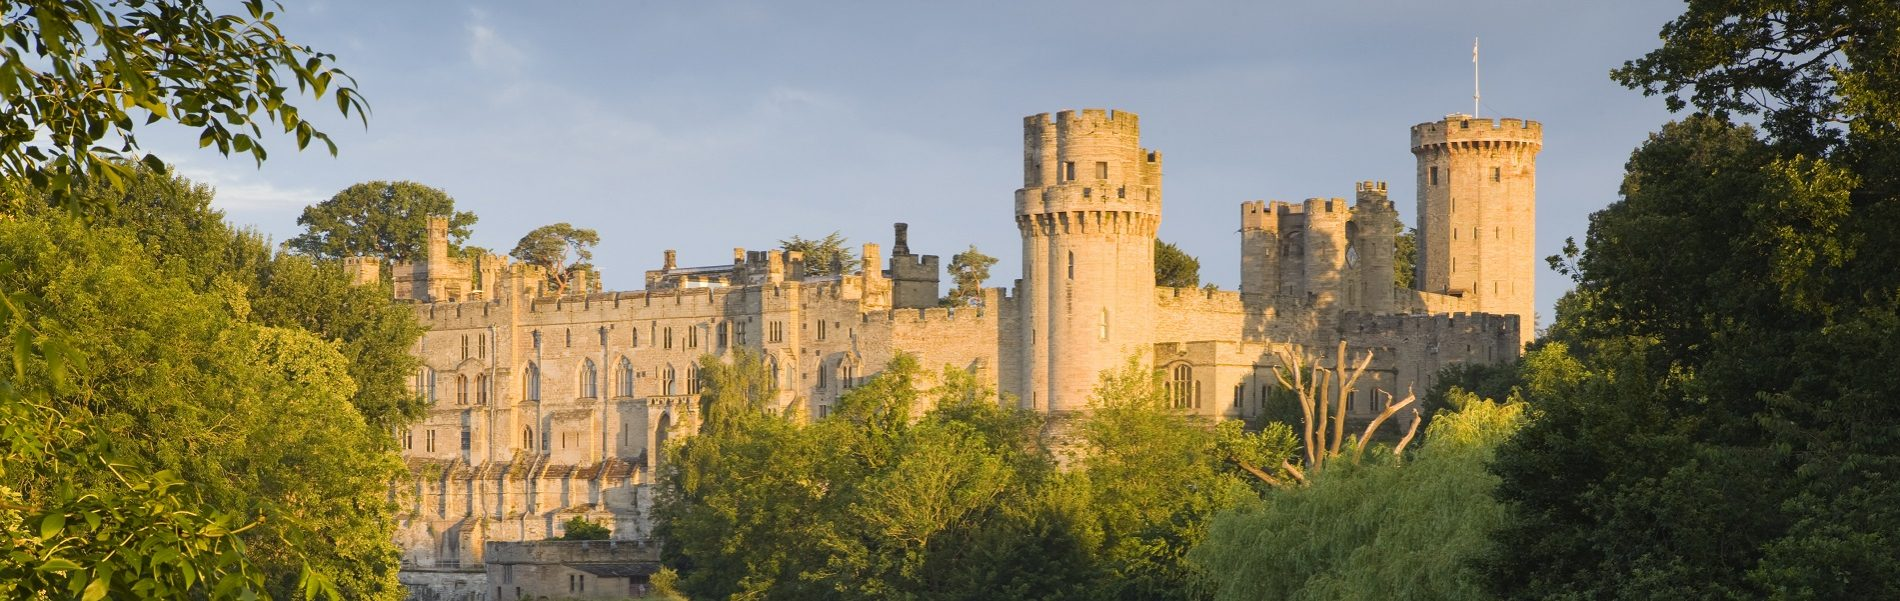 Tours of the Heart of England - Warwick Castle